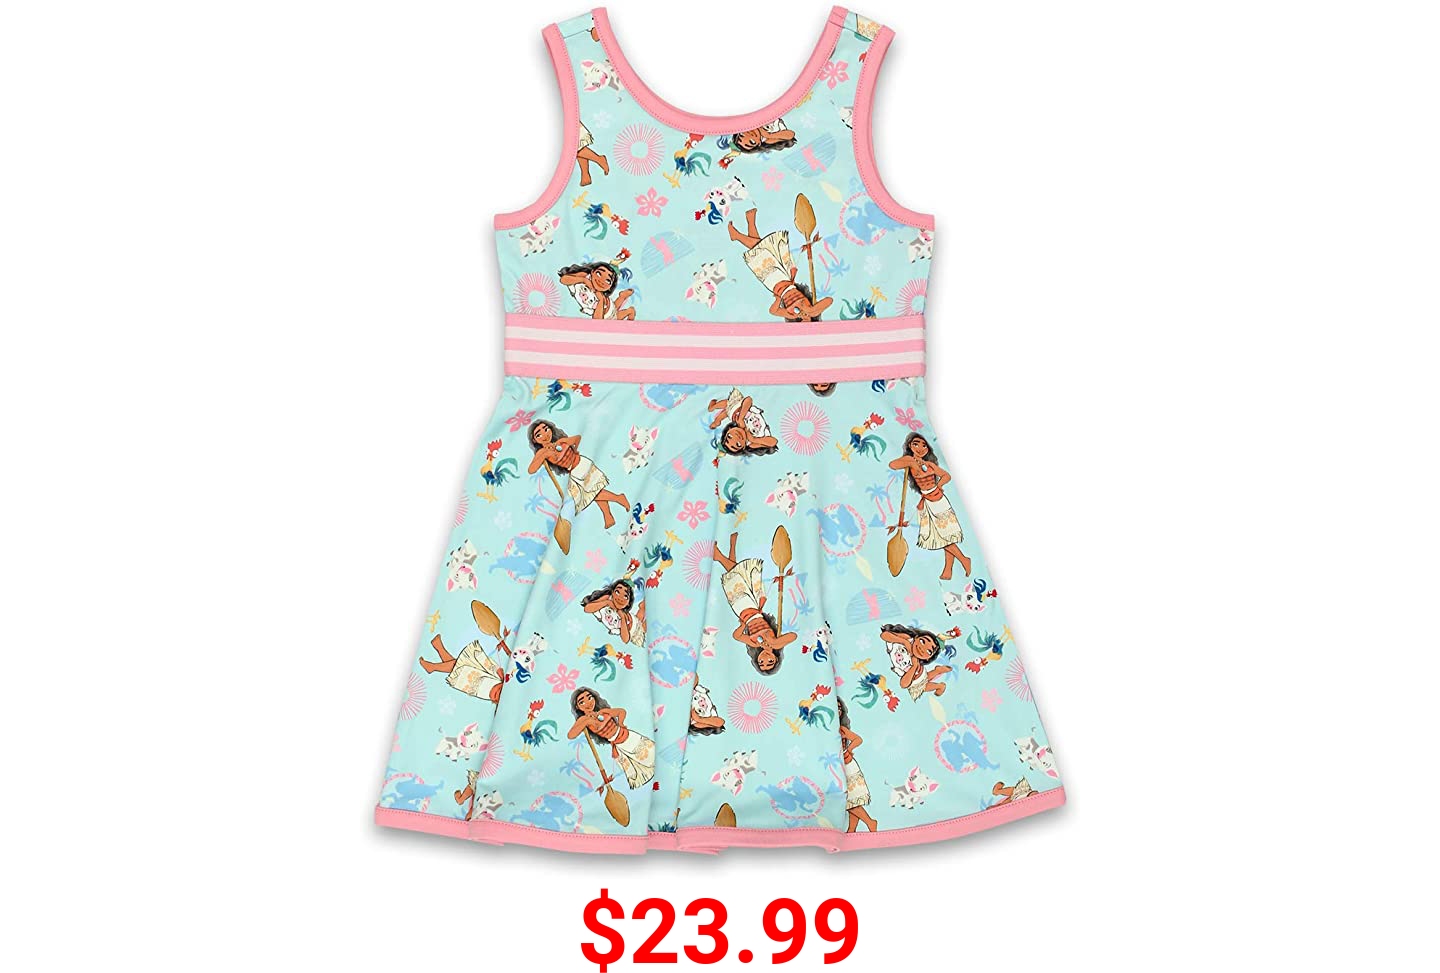 Disney Moana Toddler Girls Fit and Flare Ultra Soft Dress